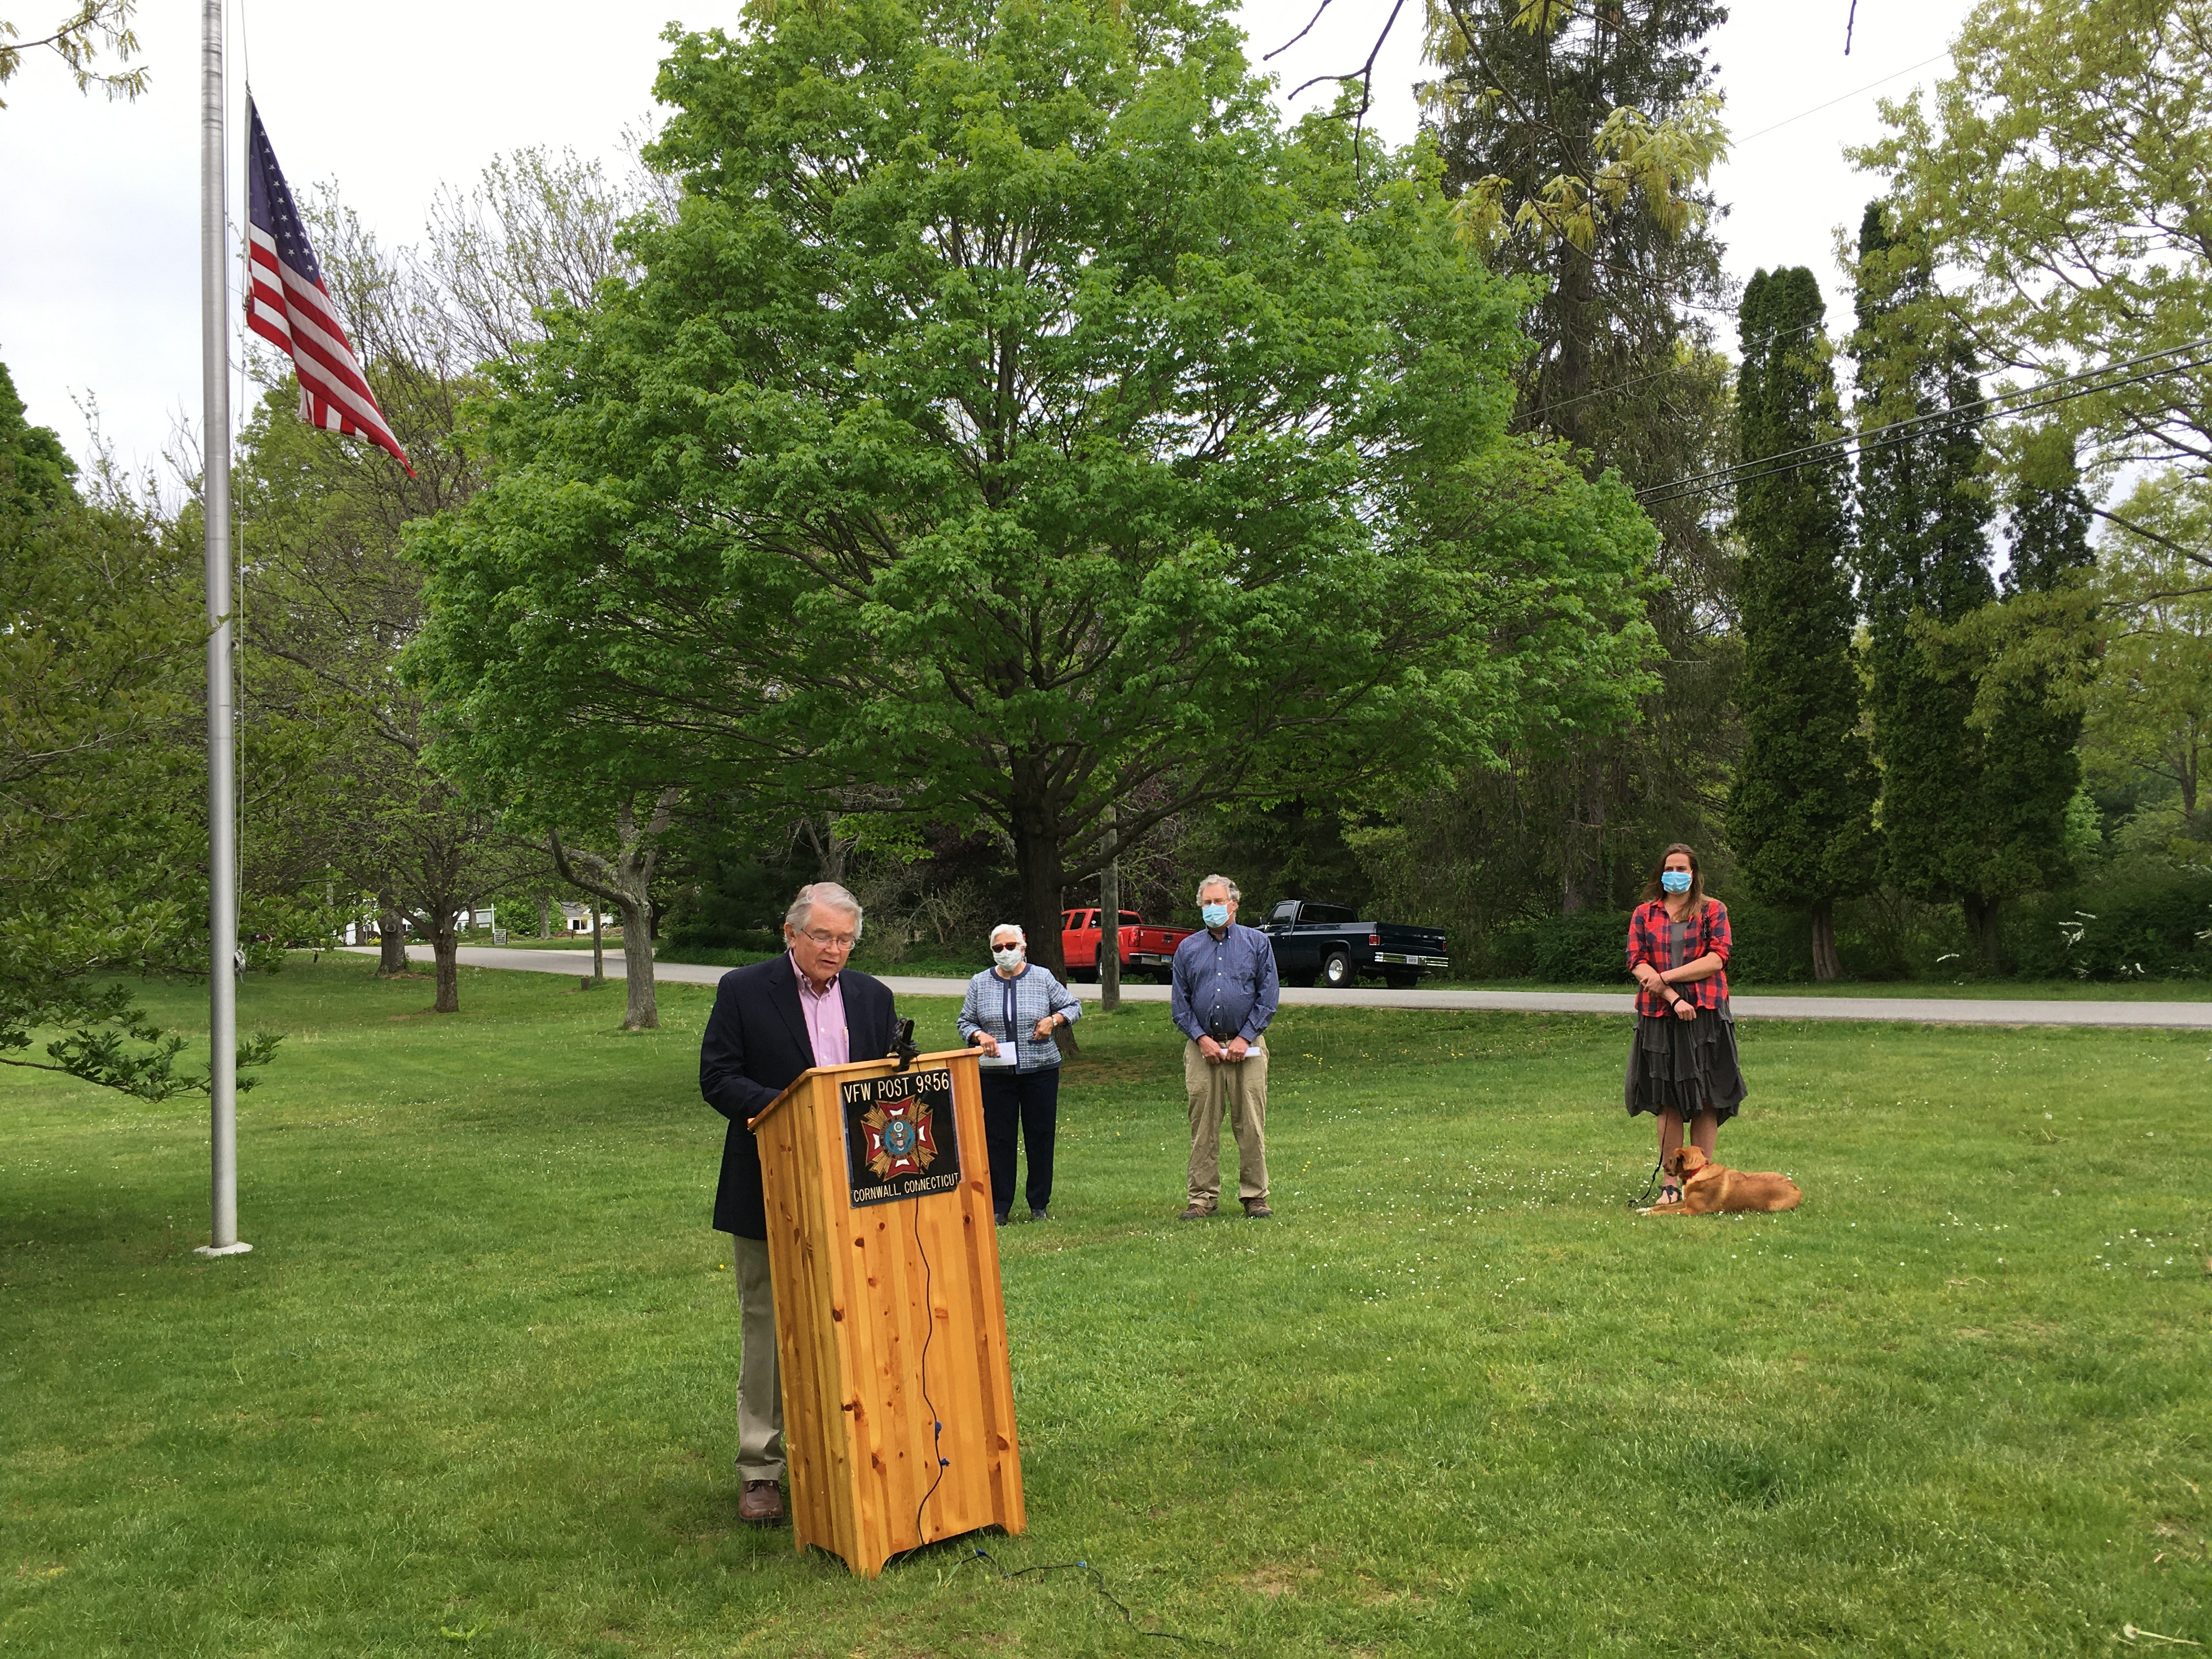 <strong>Bill Berry spoke at a Memorial Day ceremony held on the Green across from Town Hall in Cornwall.<em>Photo by Cynthia Hochswender</em></strong>